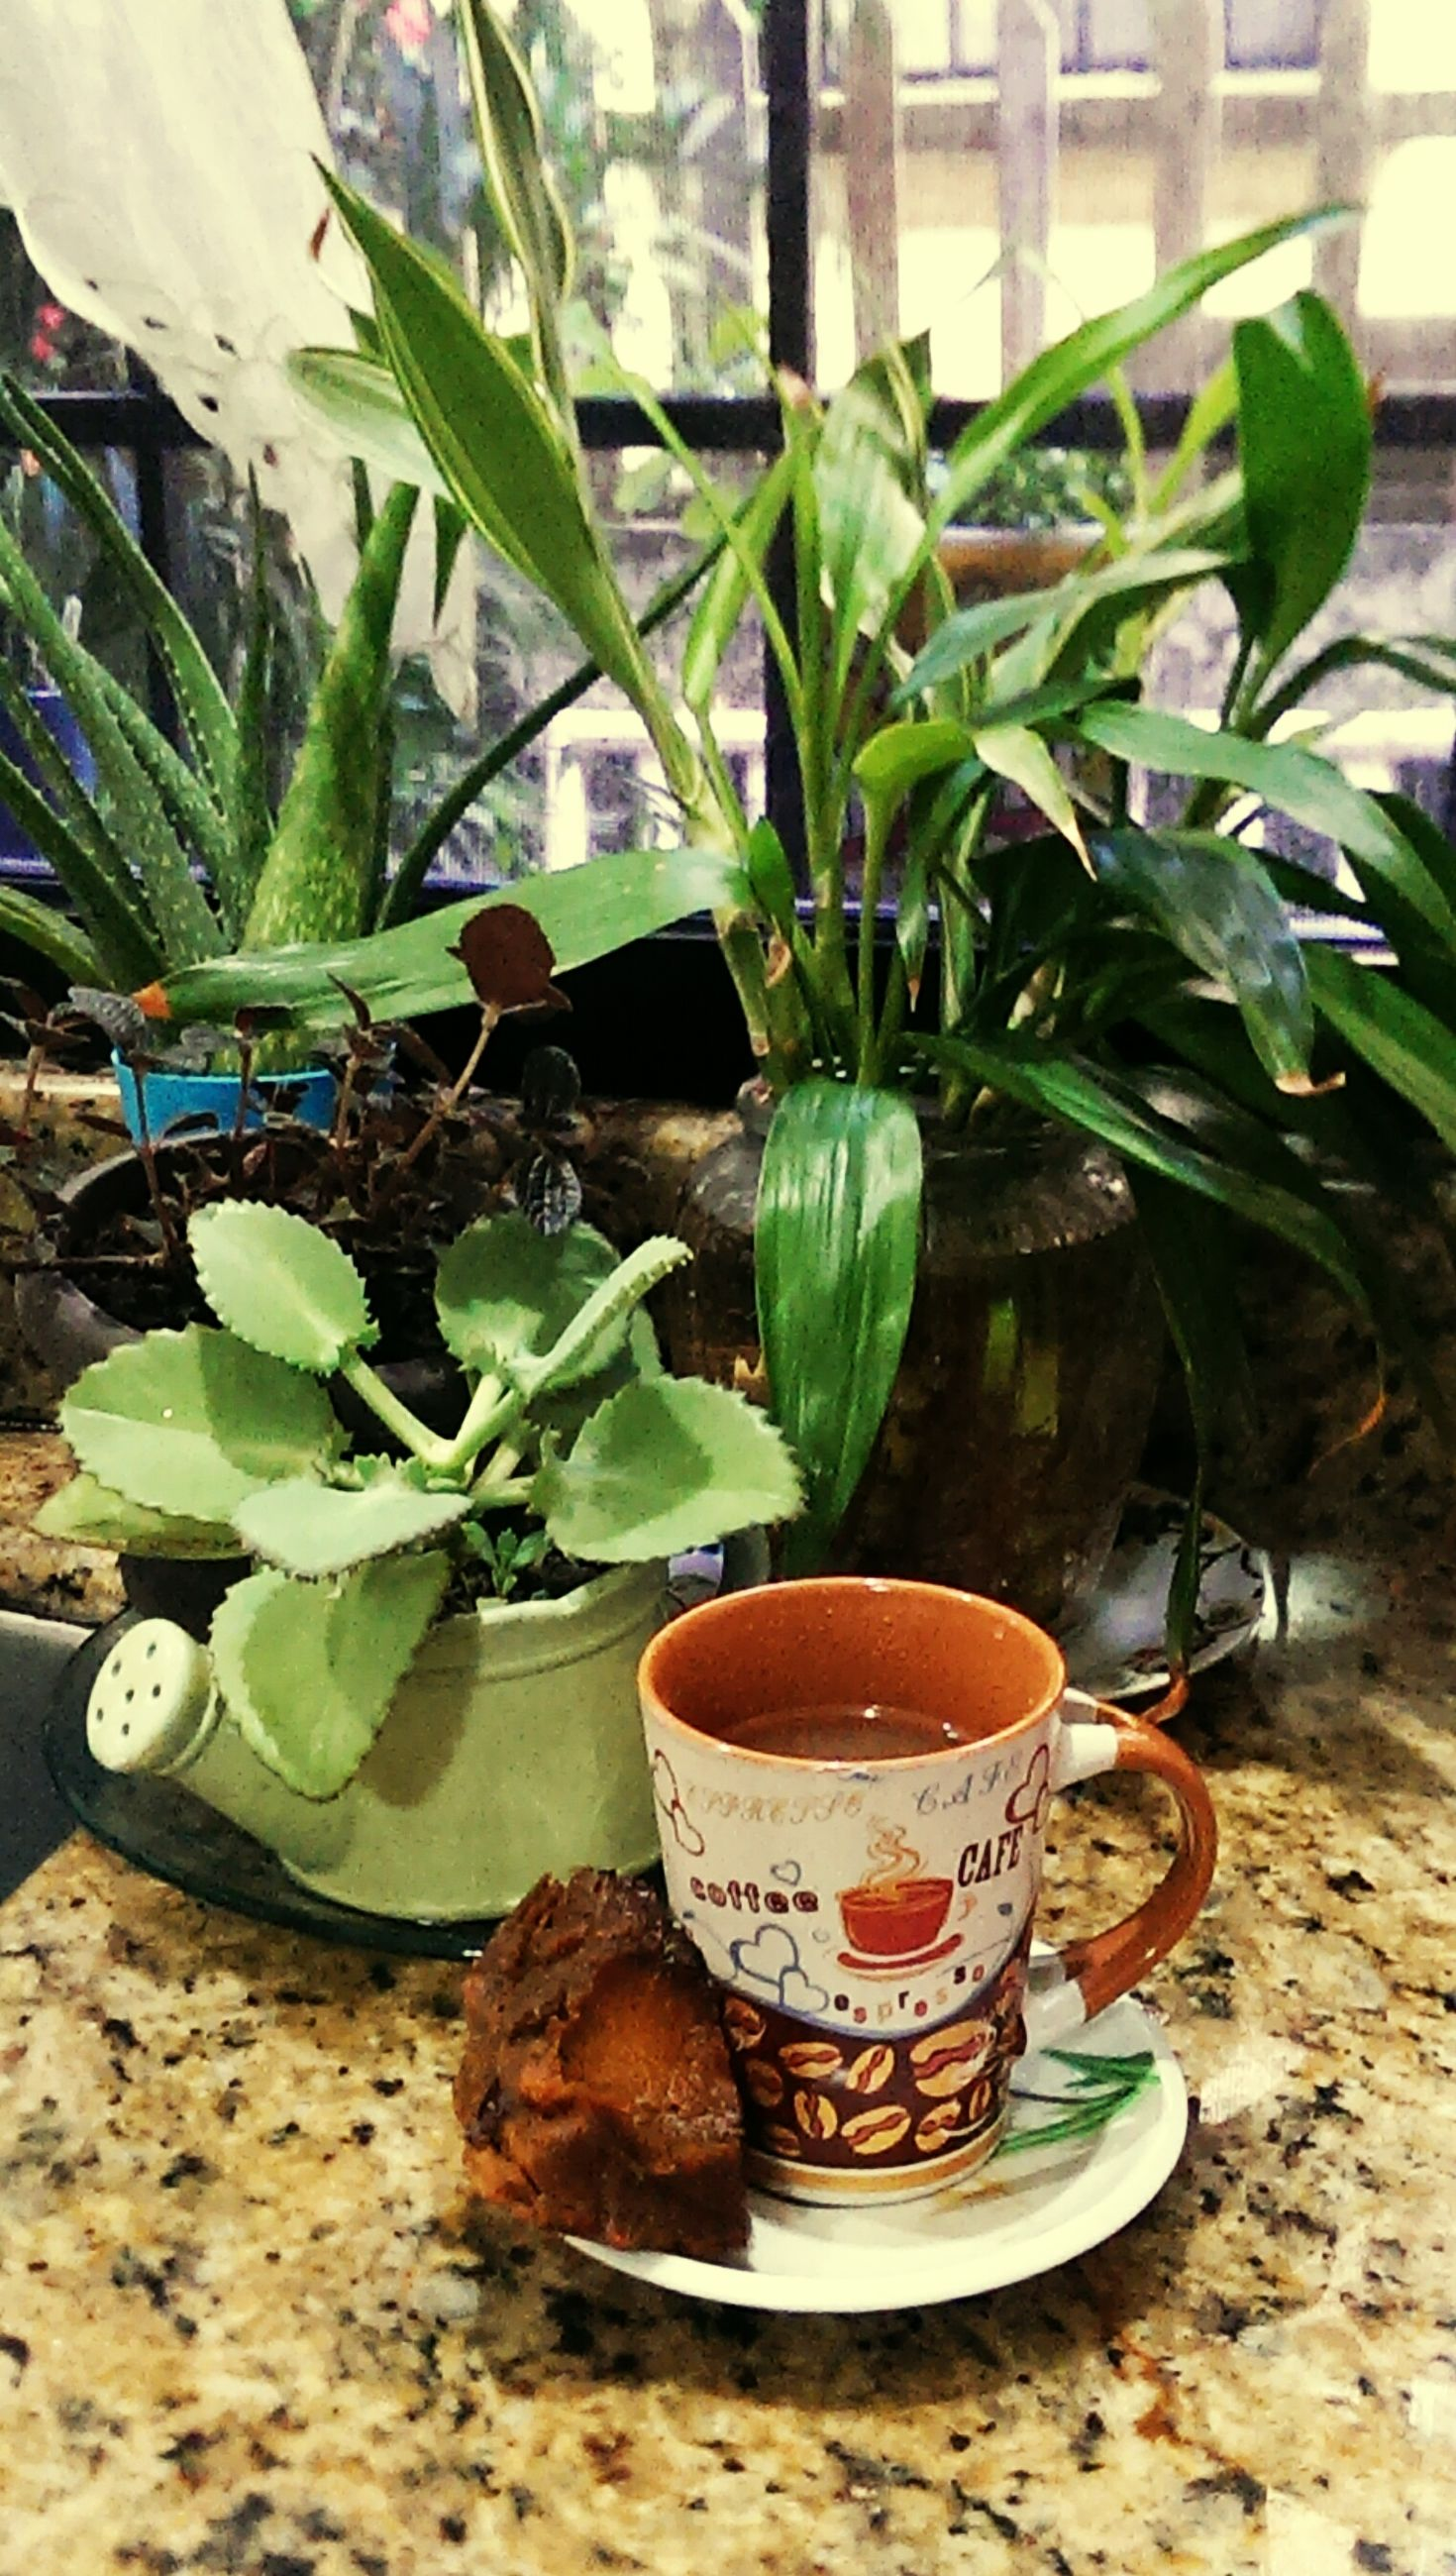 food and drink, freshness, table, potted plant, drink, leaf, plant, growth, refreshment, still life, healthy eating, indoors, close-up, coffee cup, day, focus on foreground, no people, flower pot, green color, vase